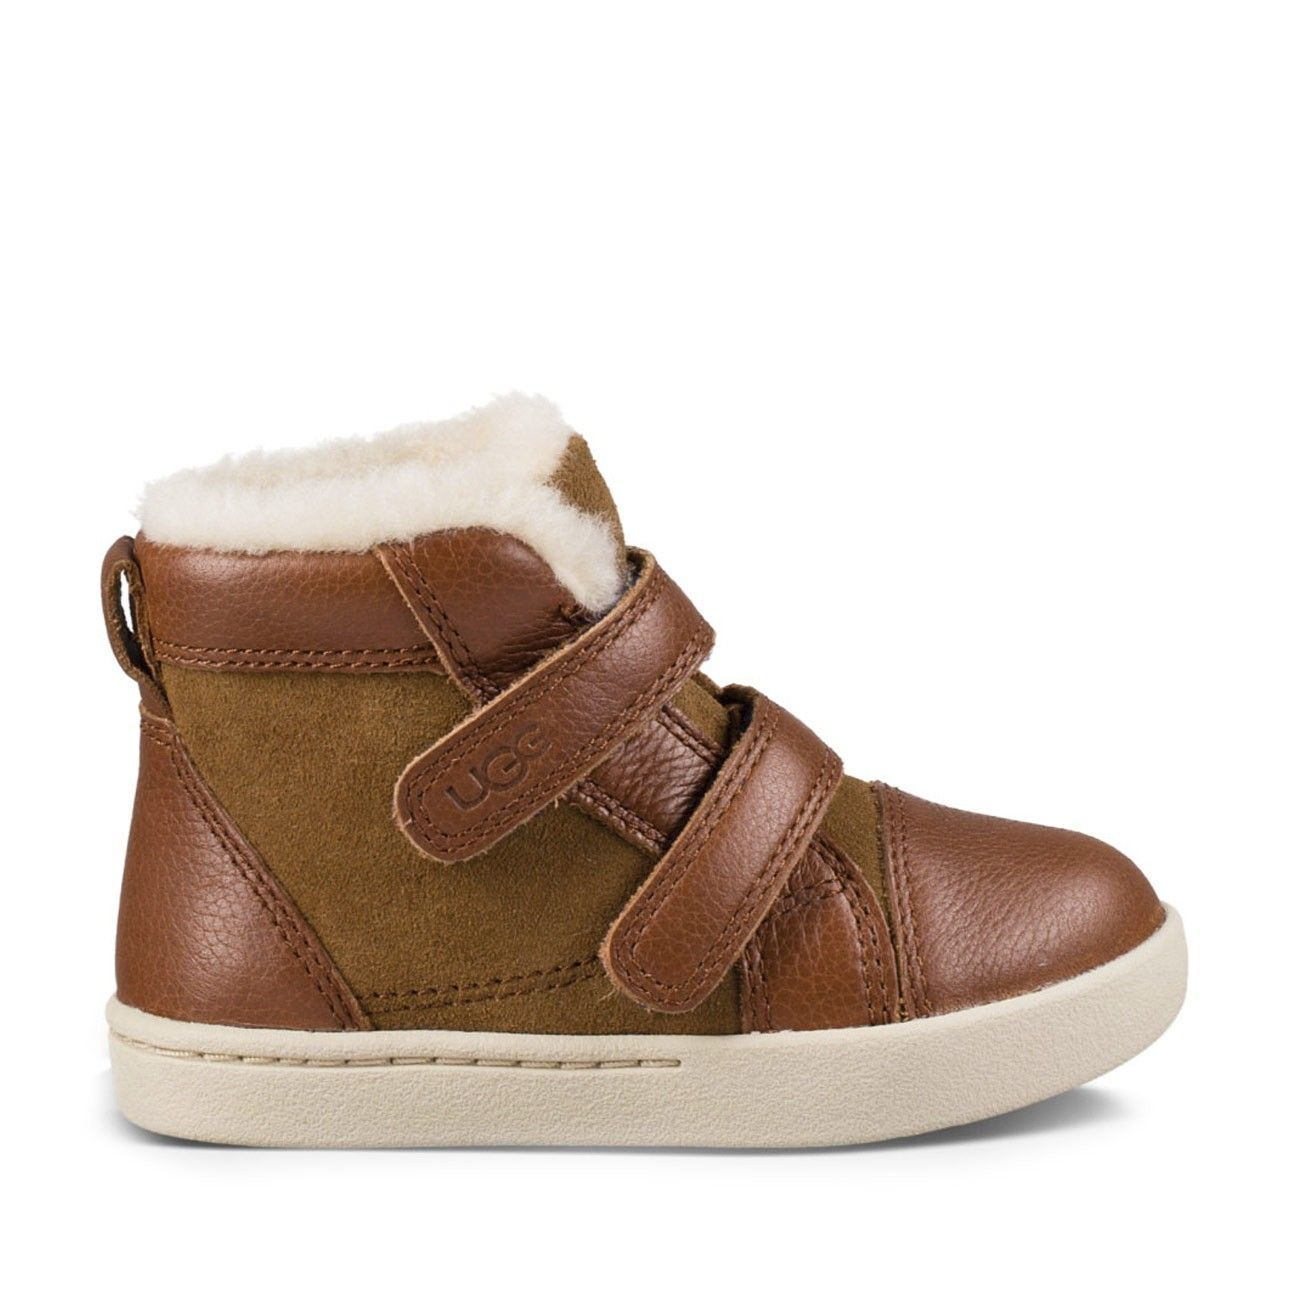 1bc43430986 Rennon Herringbone Velcro Bootie - Chestnut-6T | Products | Ugg ...